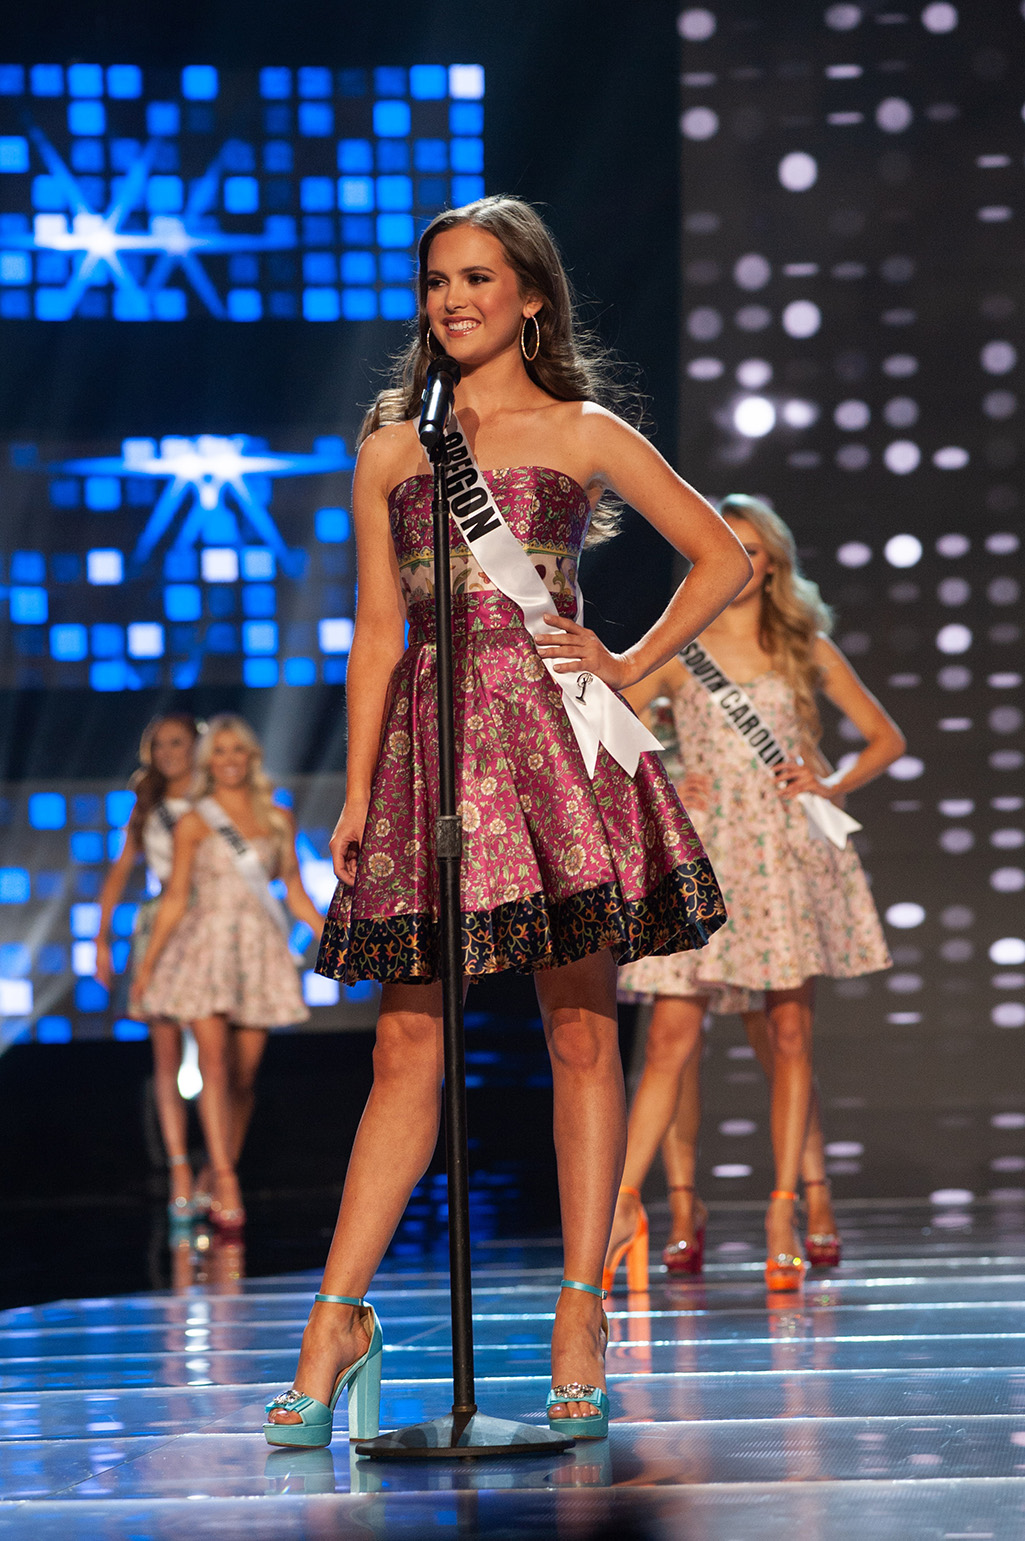 Klamath County Student Mackenzie Peterson to Represent Oregon at MISS TEEN USA®